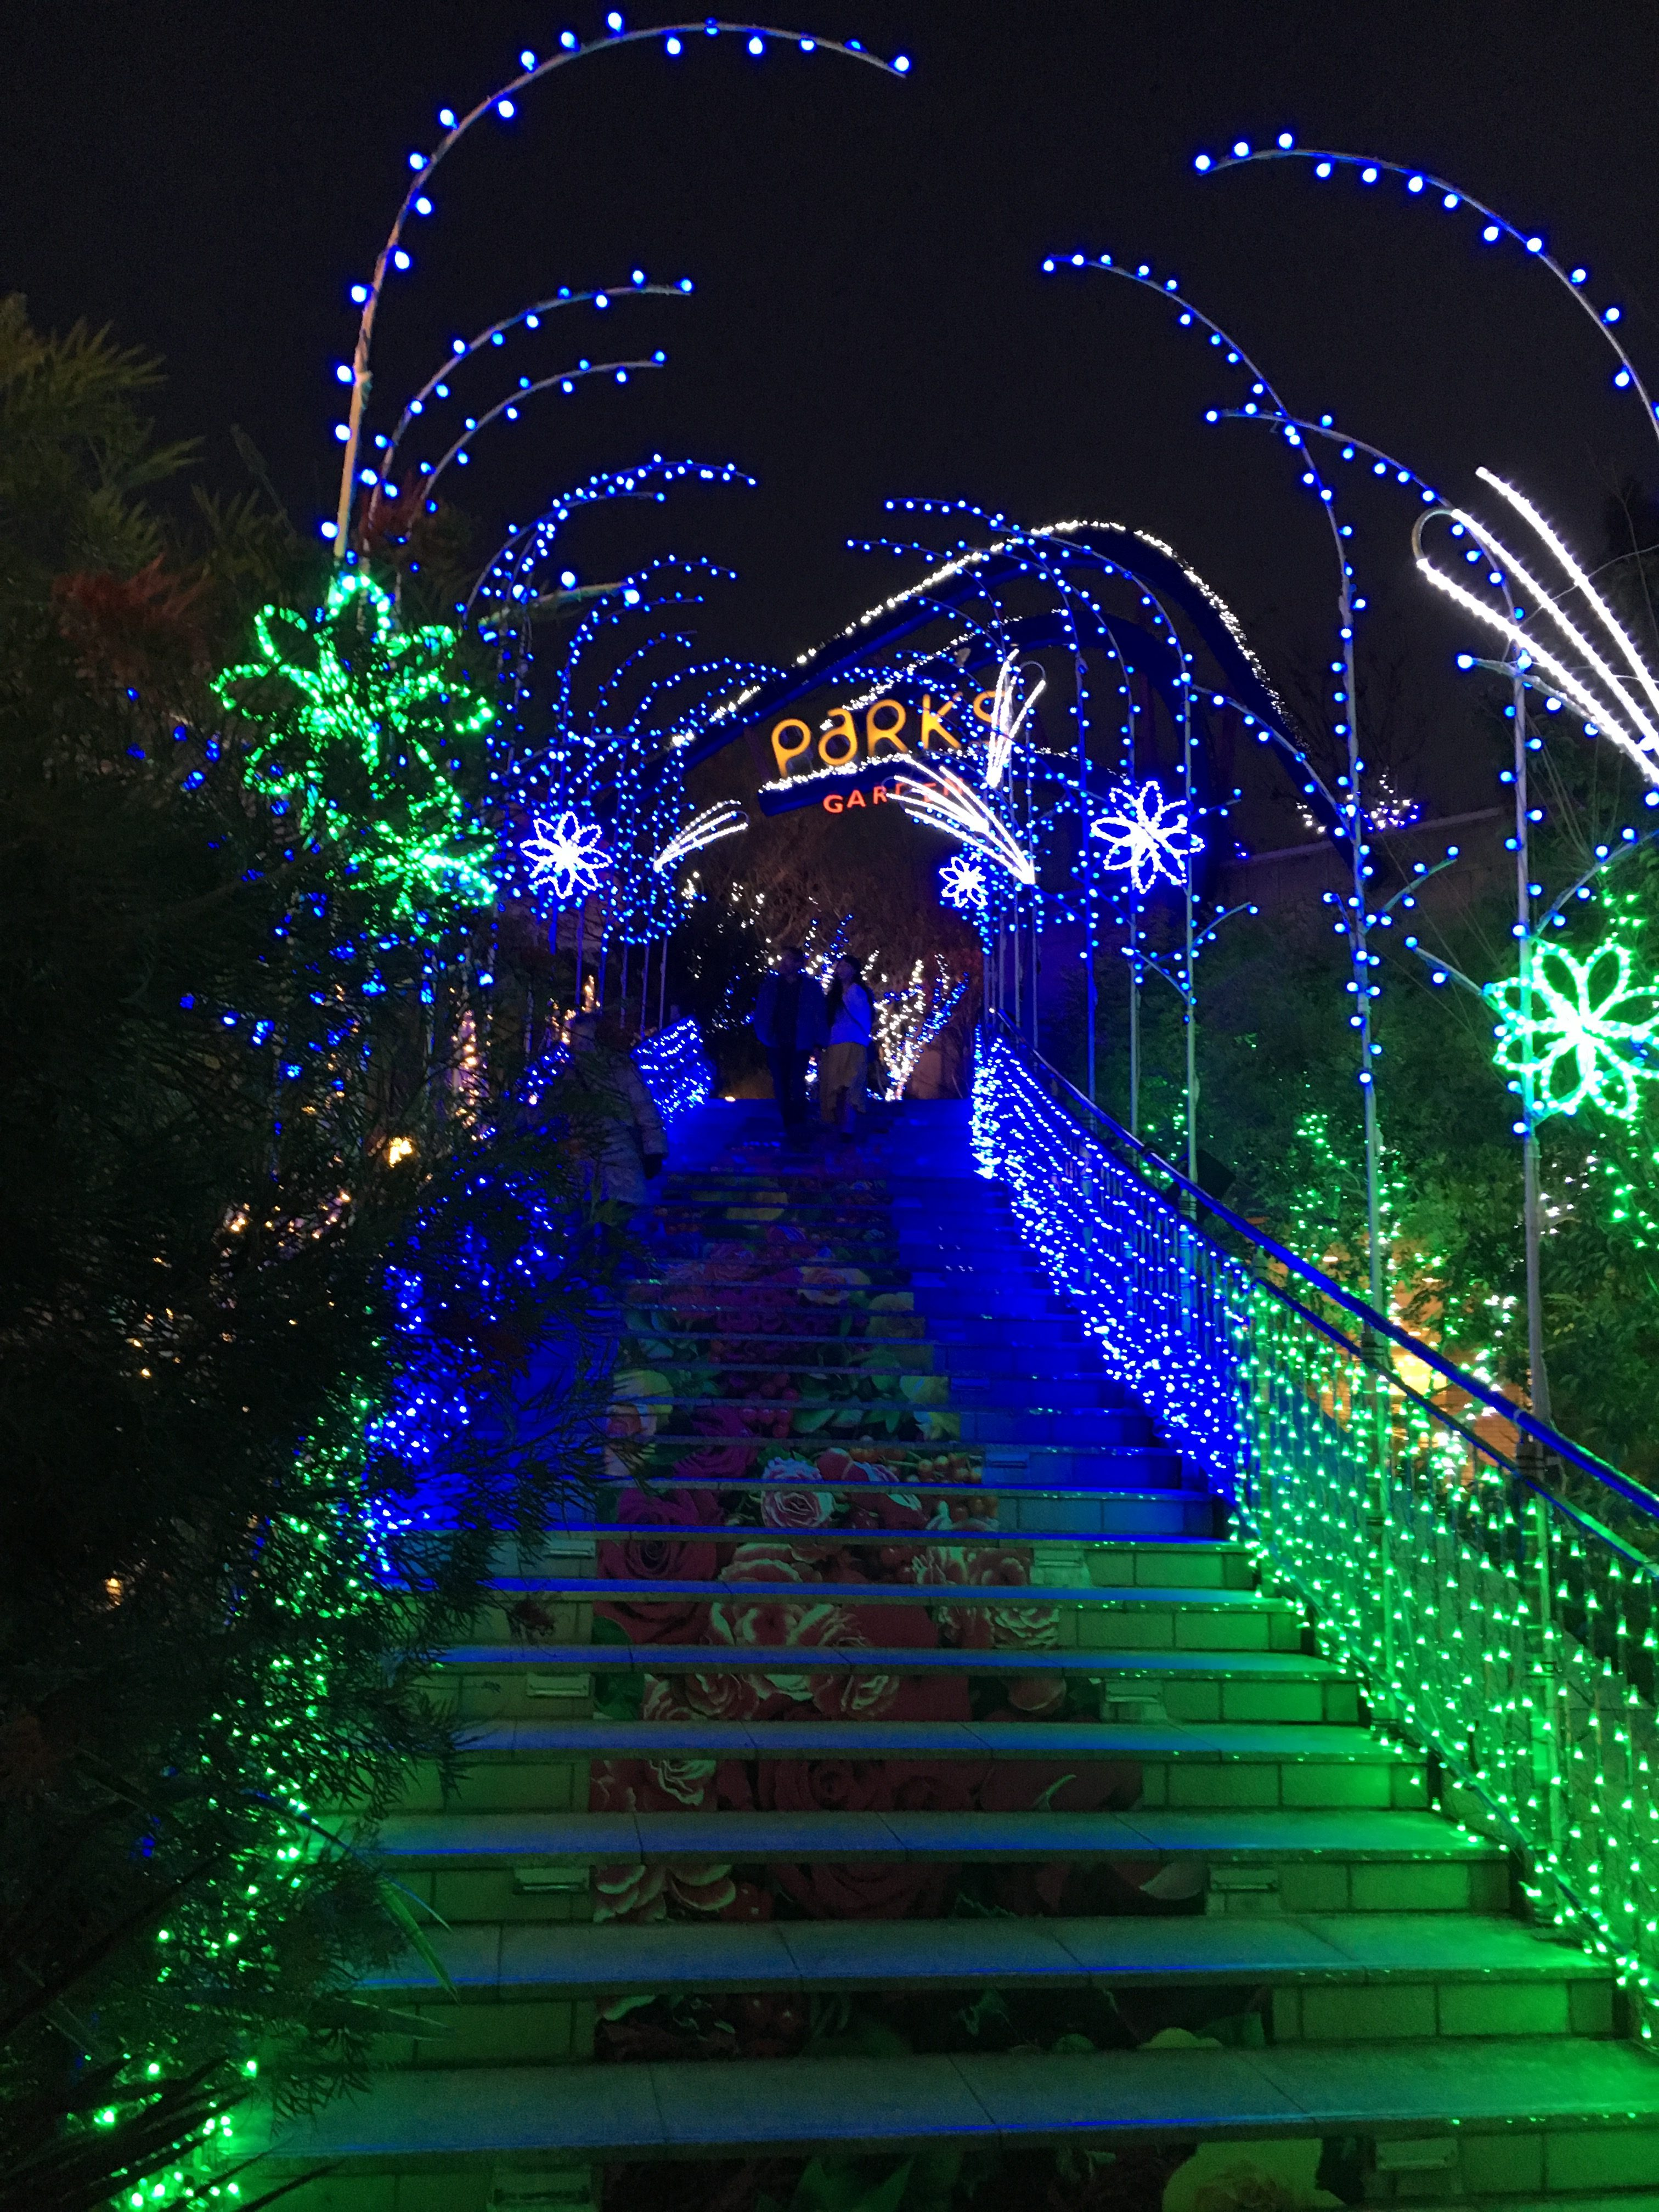 namba parks sign covered in blue and green lights